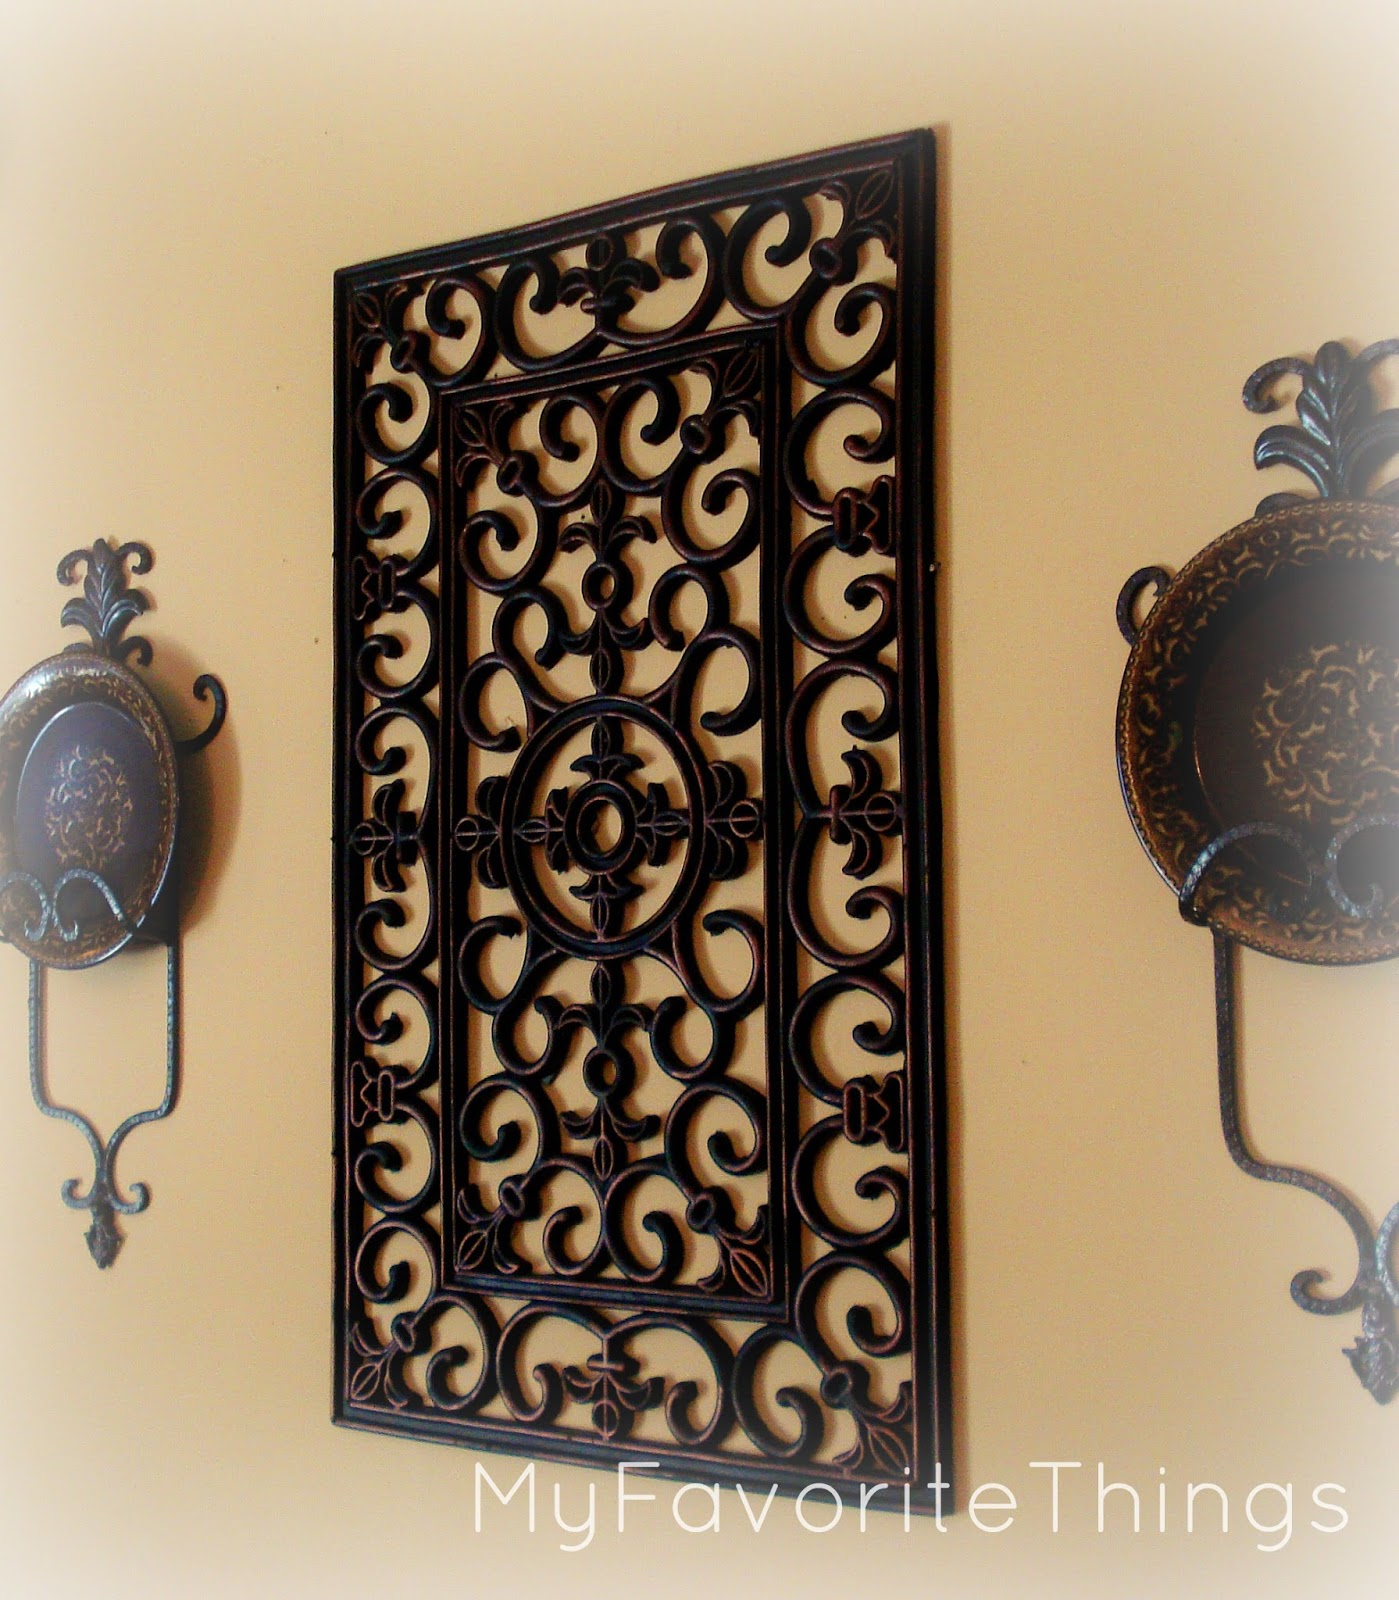 My Favorite Things Wrought Iron Wall Art